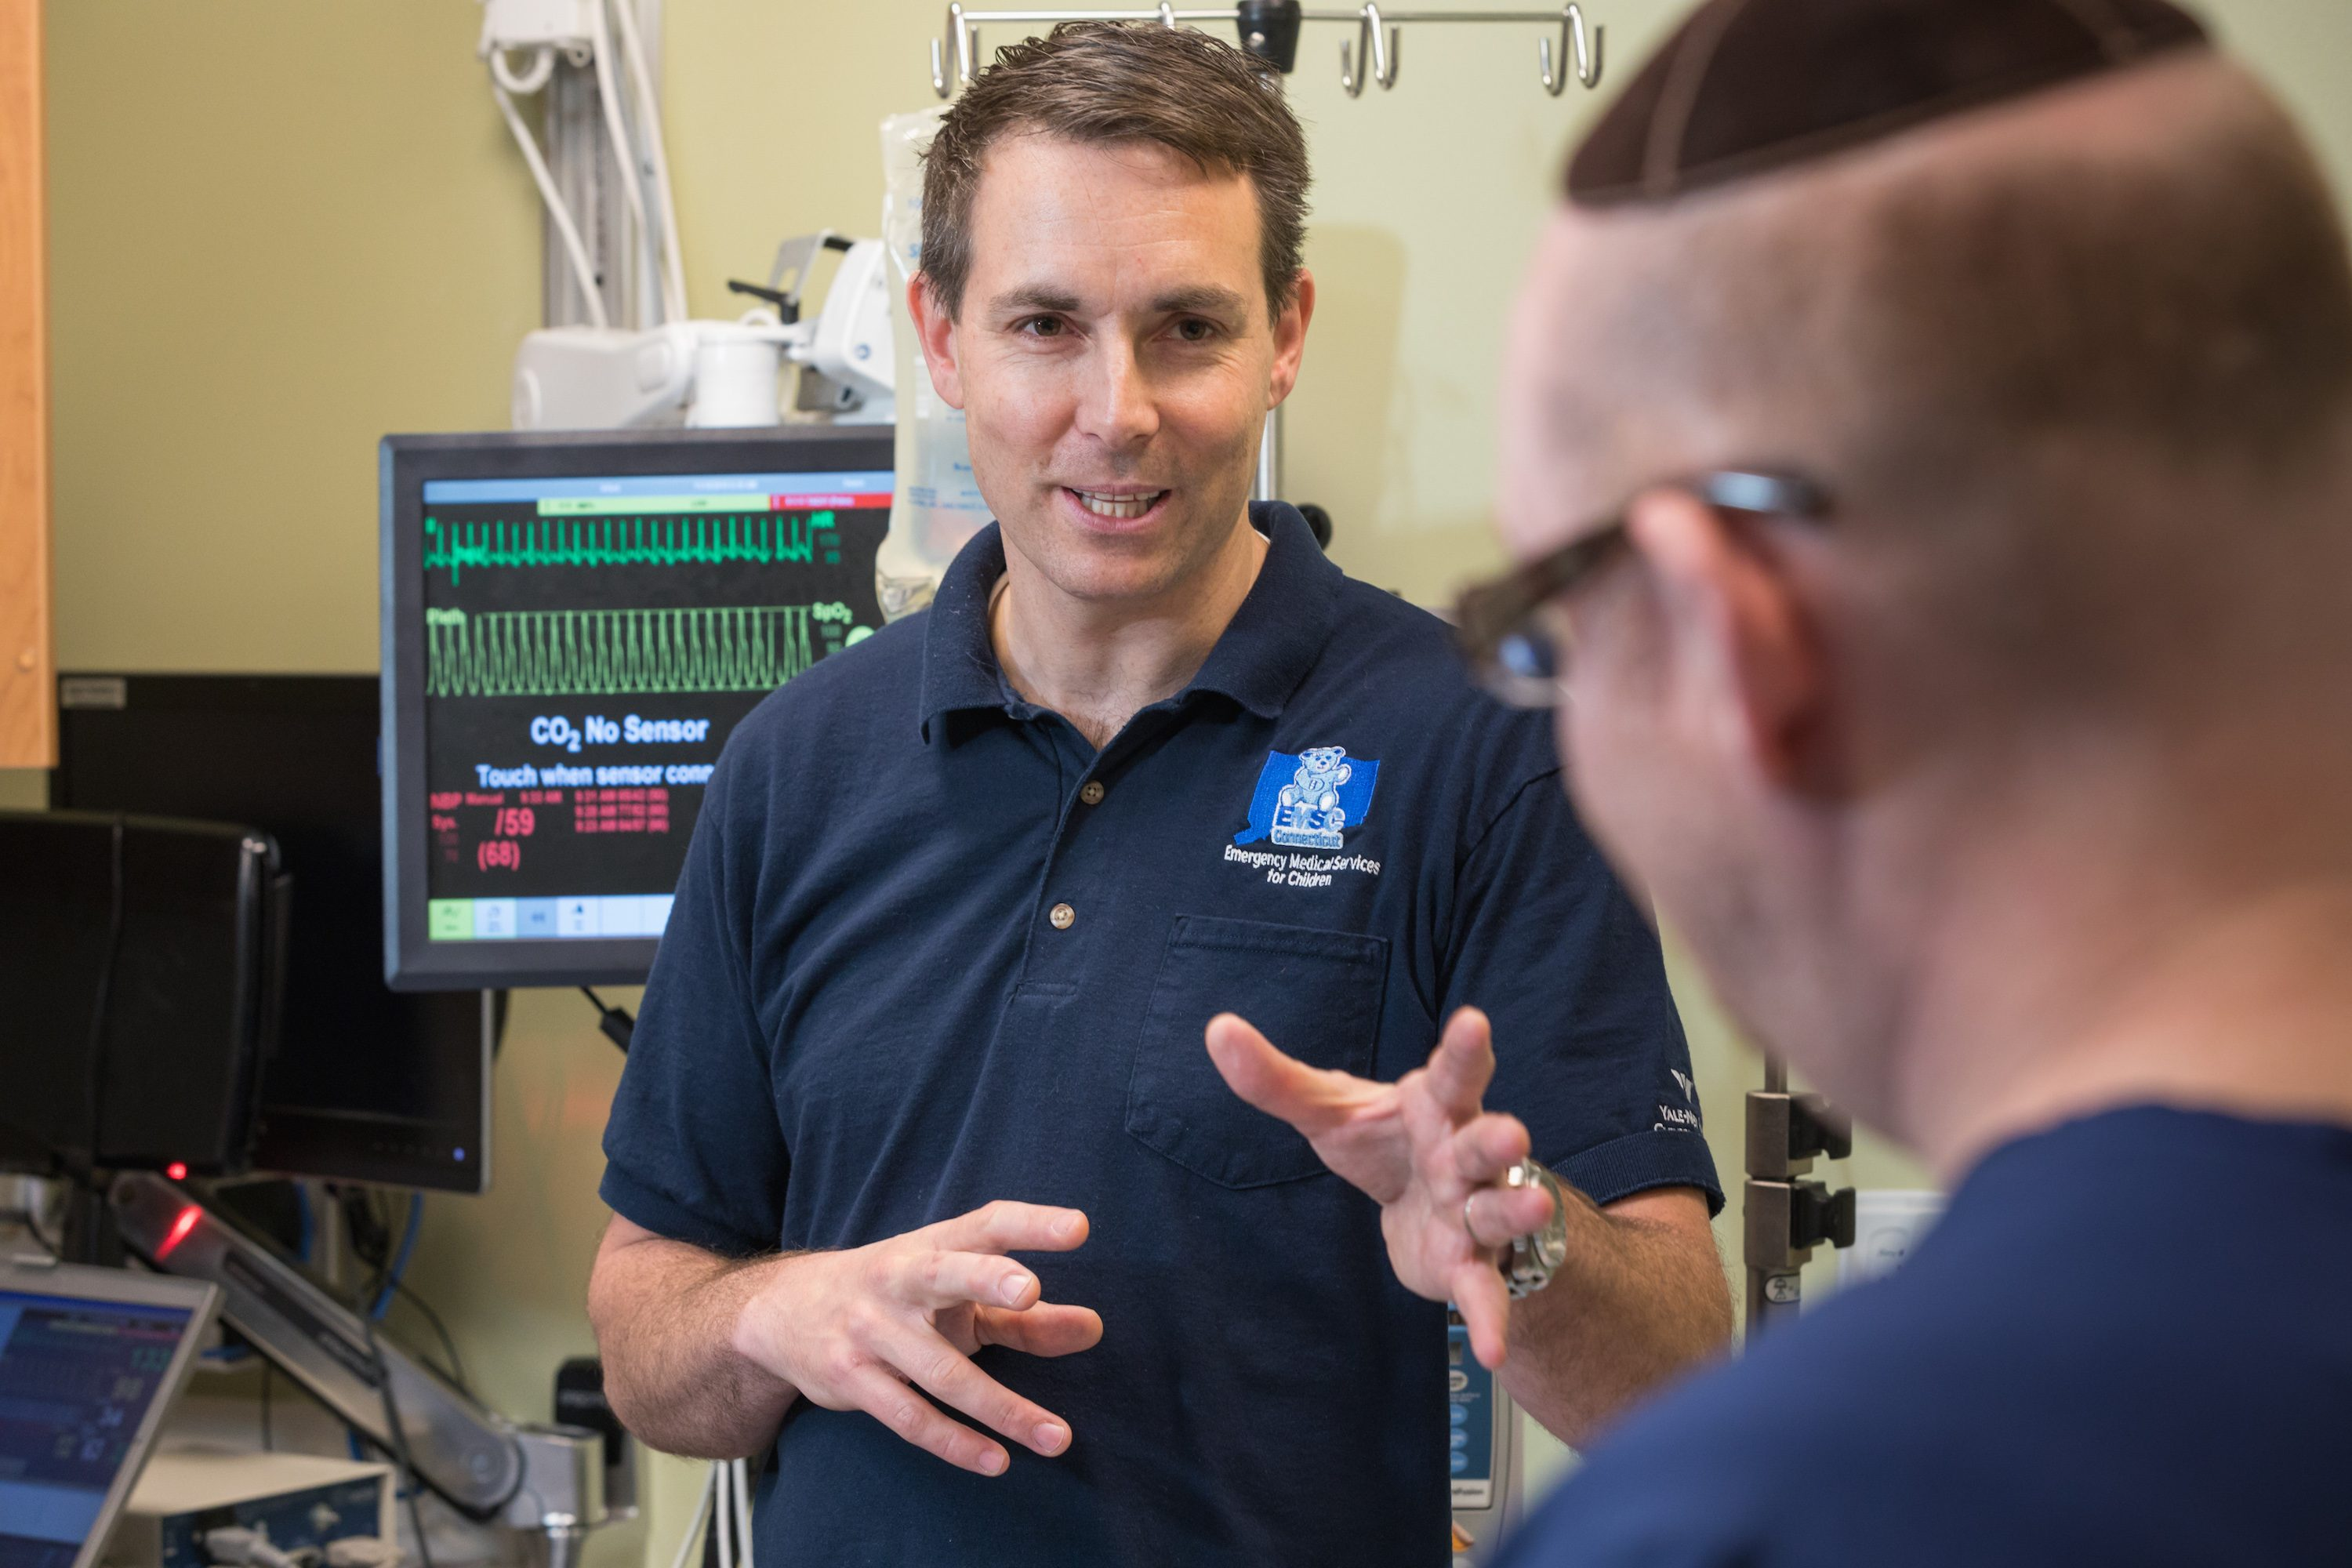 A New Tool for Pediatricians: Yale team develops simulation to improve pediatric emergency care